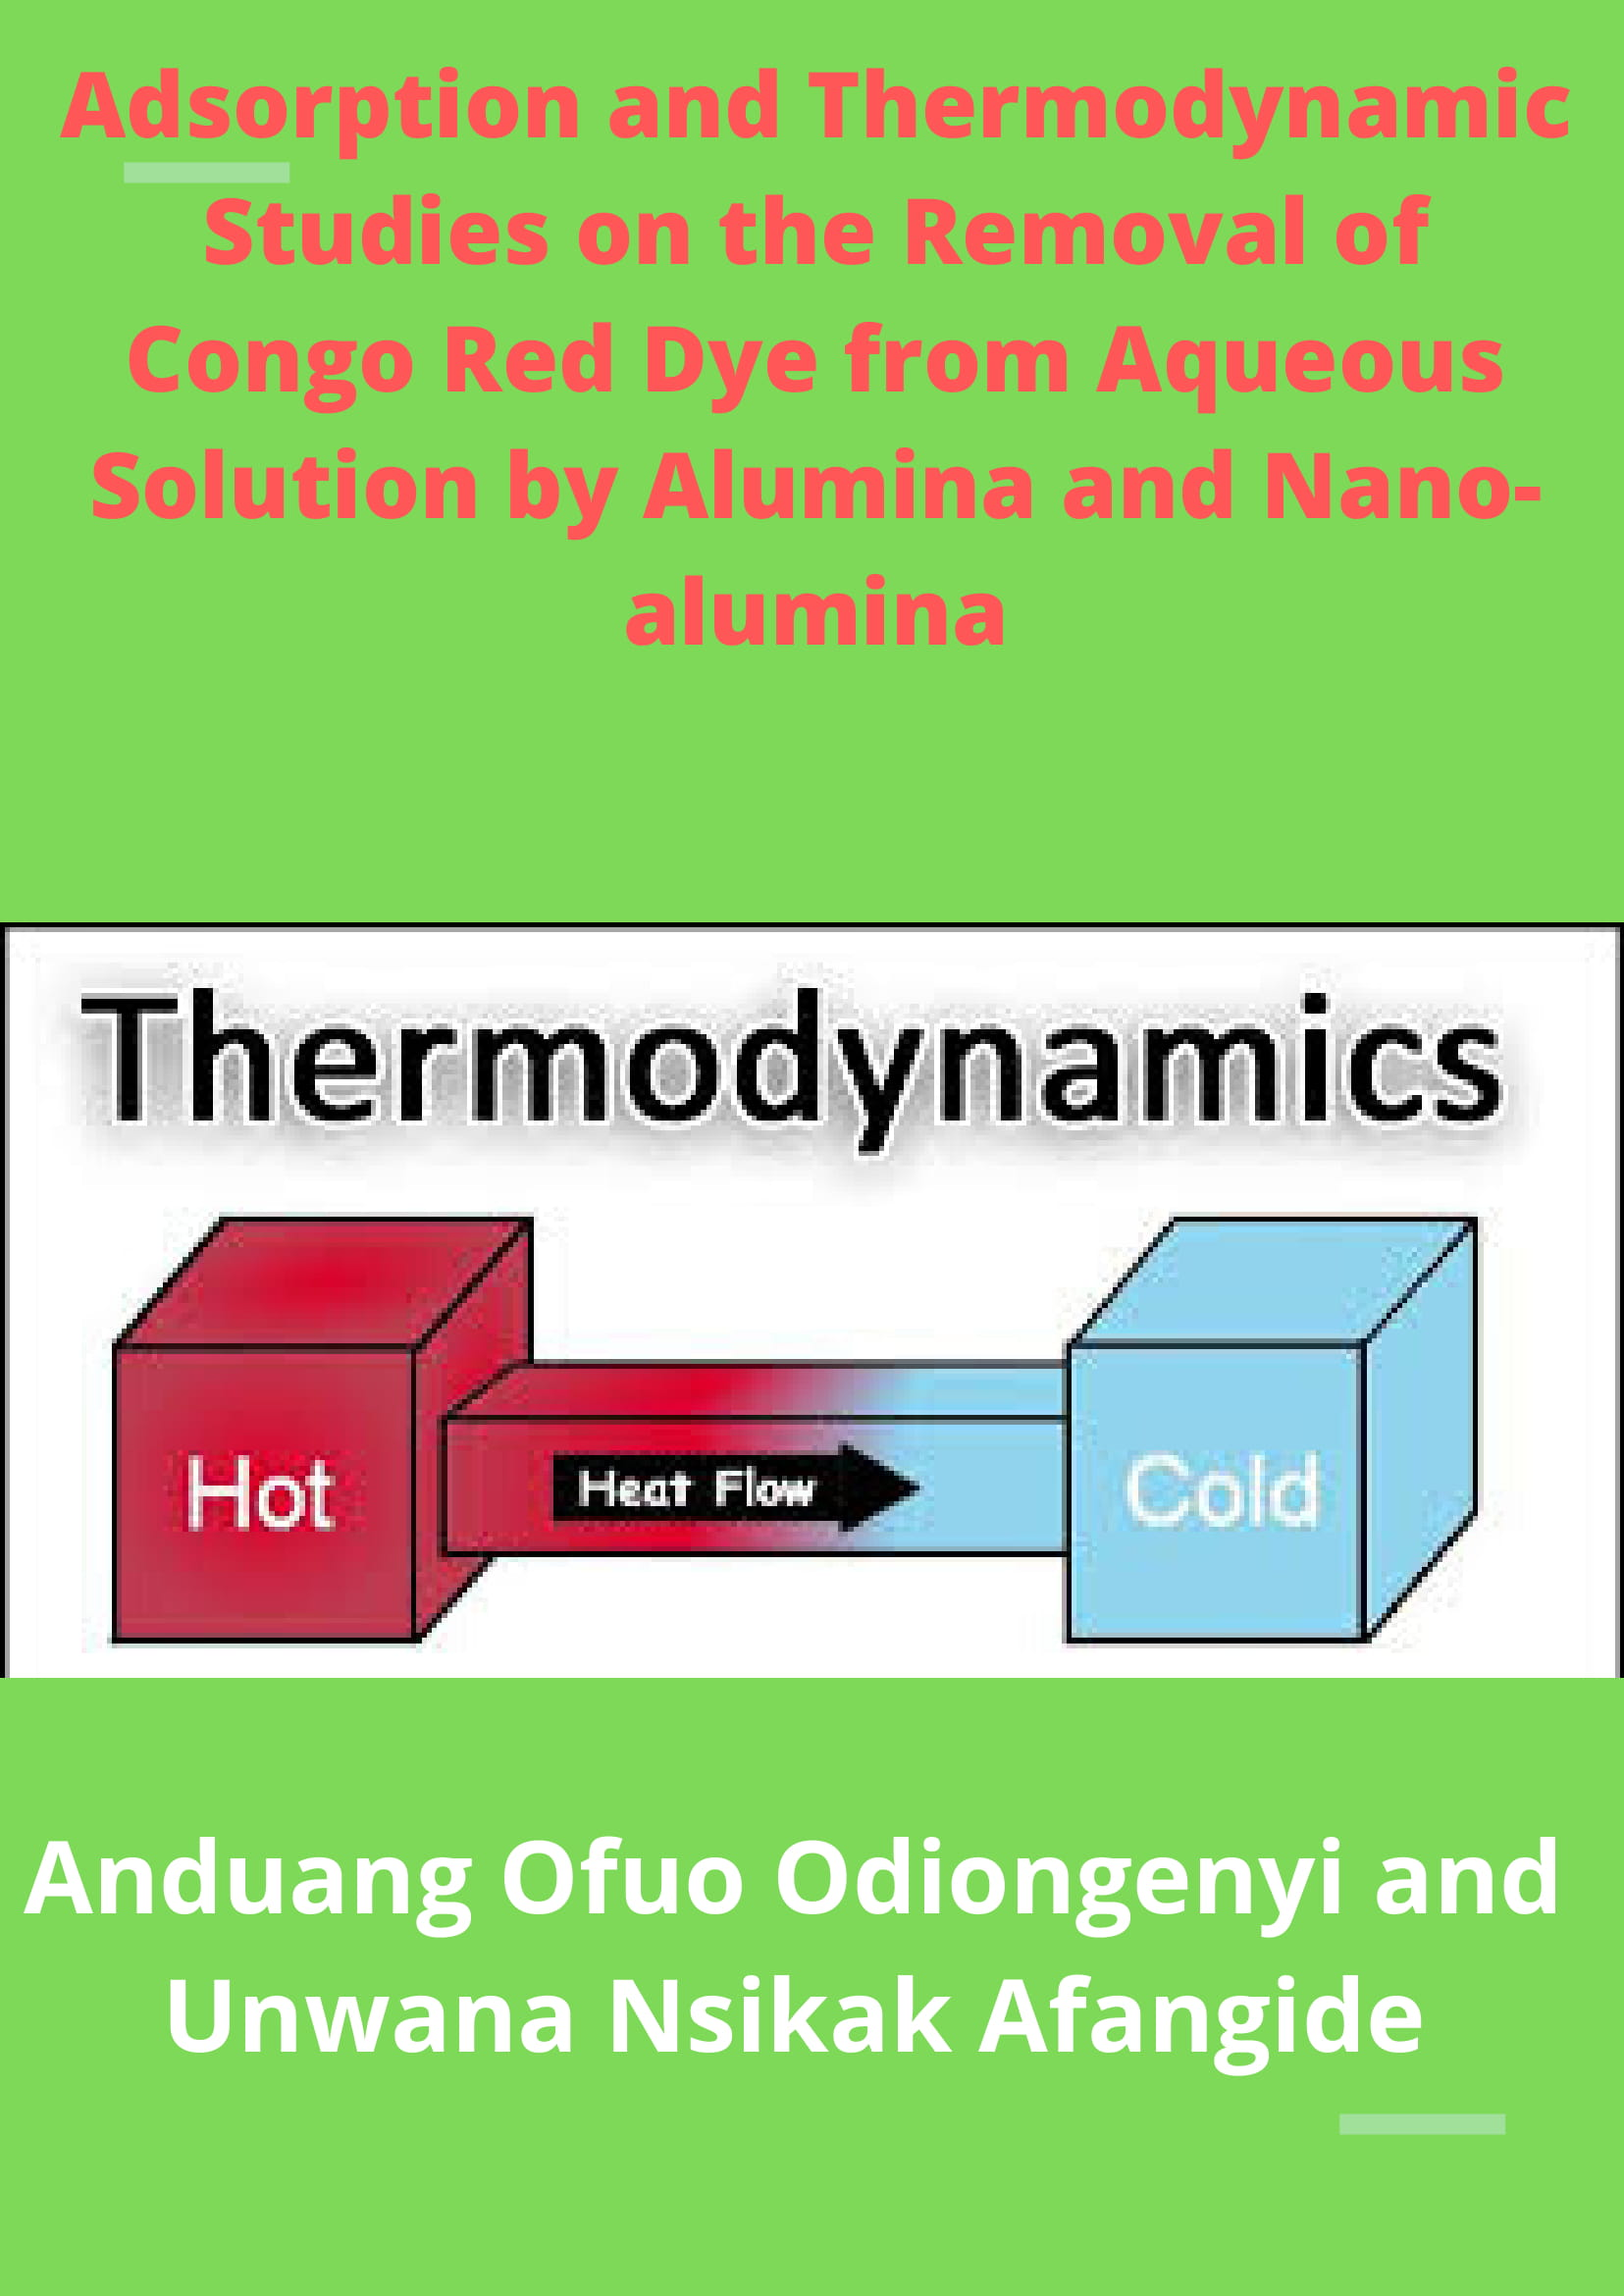 Adsorption and Thermodynamic Studies on the Removal of Congo Red Dye from Aqueous Solution by Alumina and Nano-alumina image